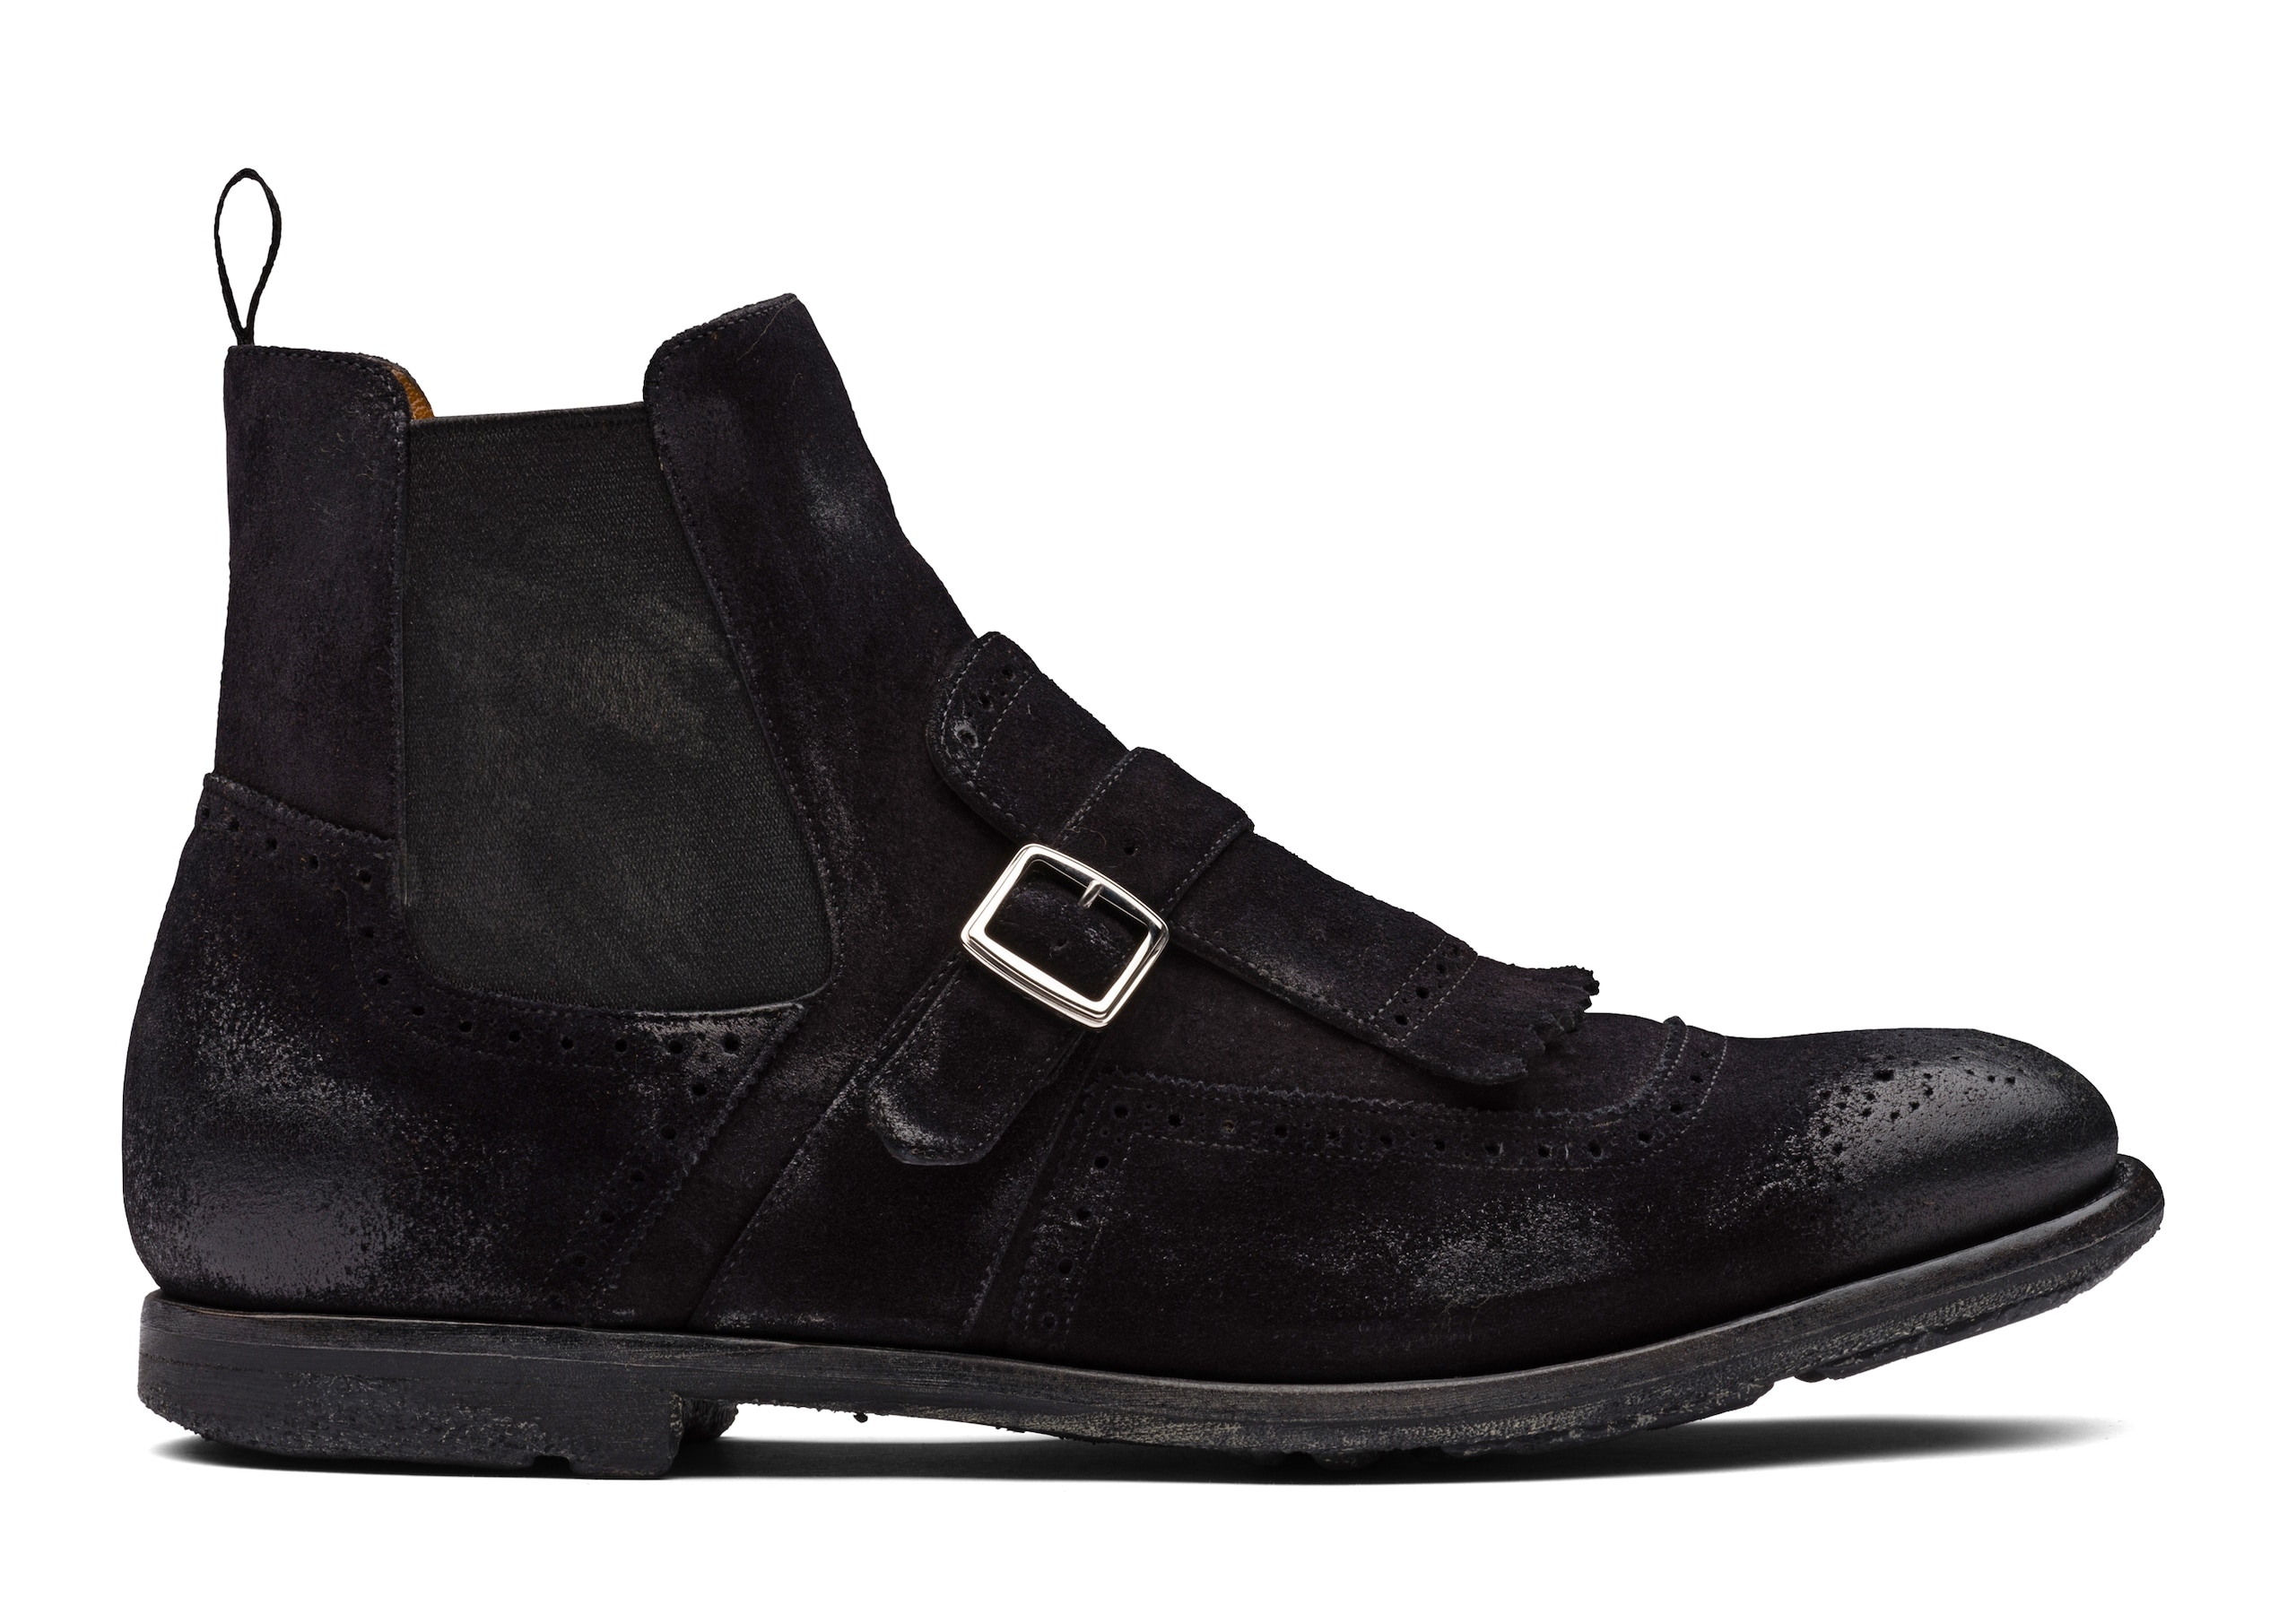 Shanghai 6 Church's Vintage Suede Chelsea Boot Black